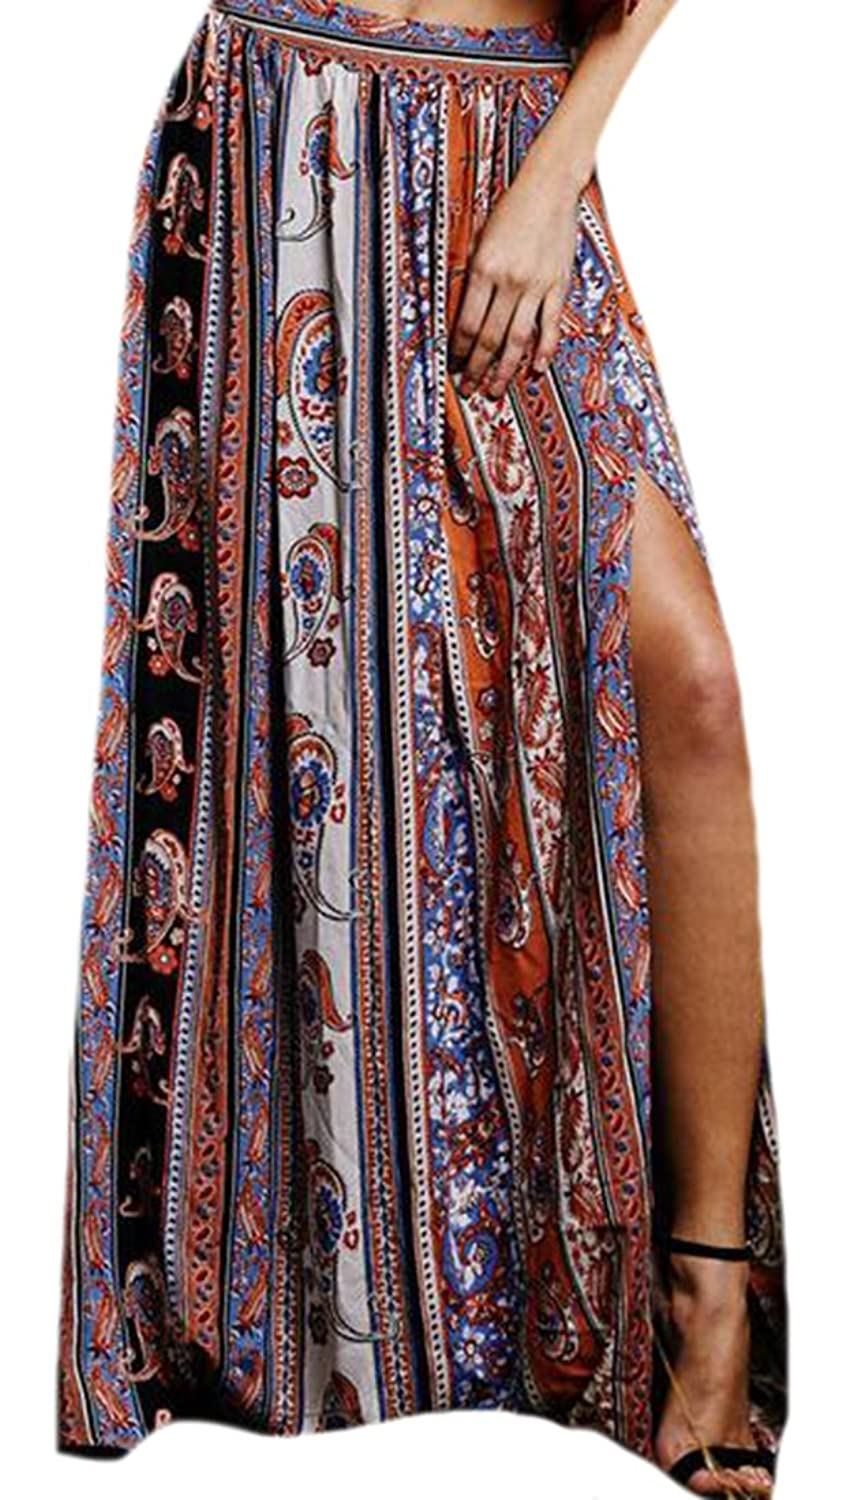 WANSHIYISHE Women Fashion Flower Print Slit BoHo Beach Long Skirt